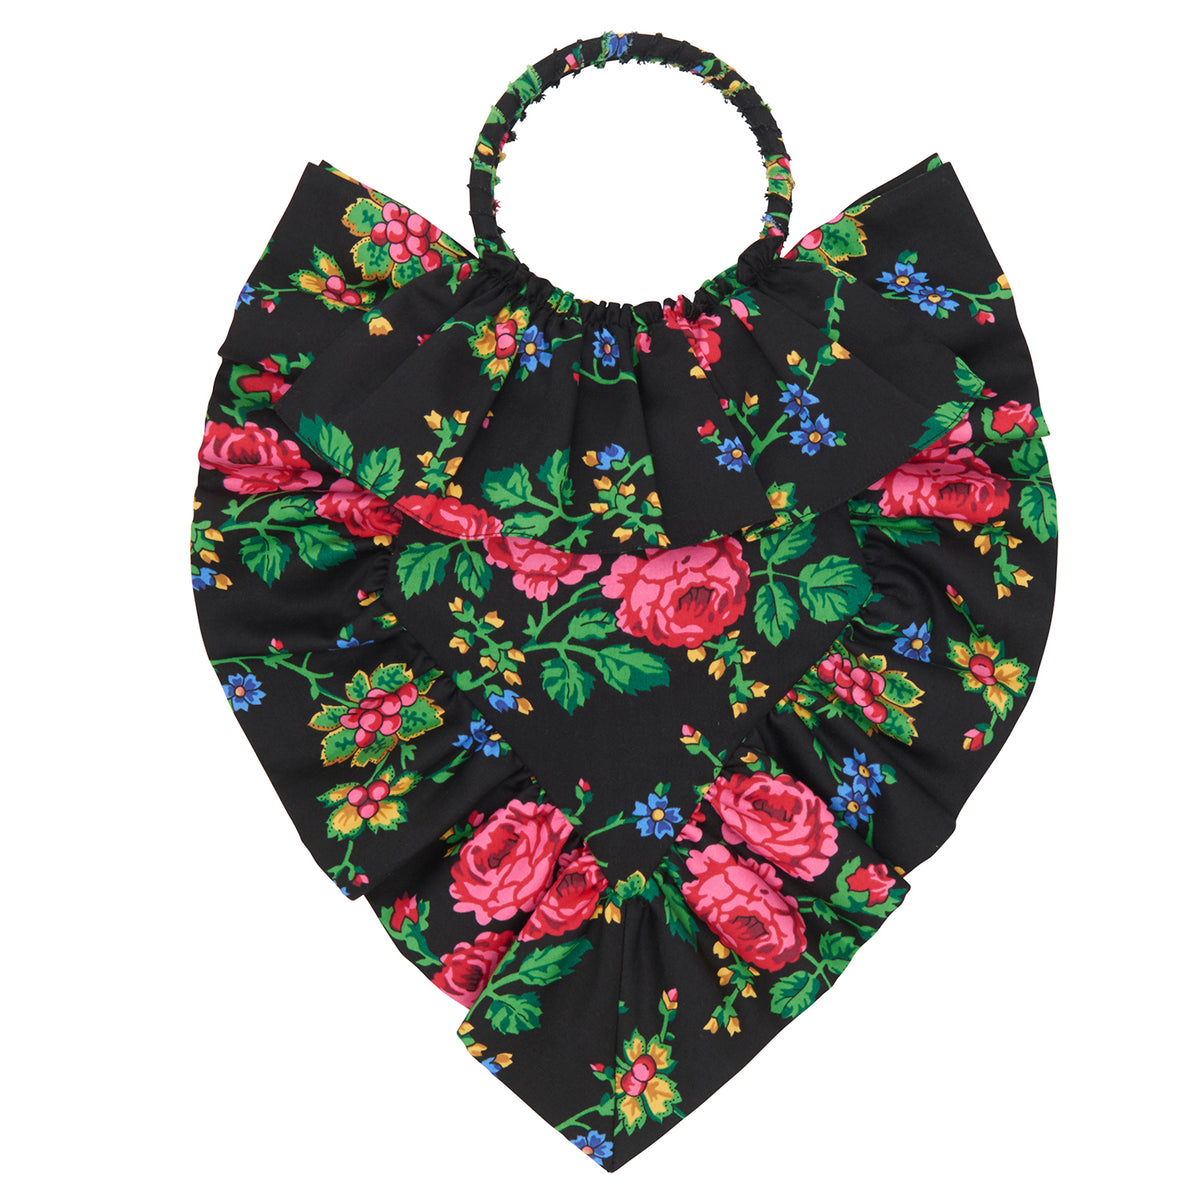 THE GYPSY COTTON SACRED HEART BAG